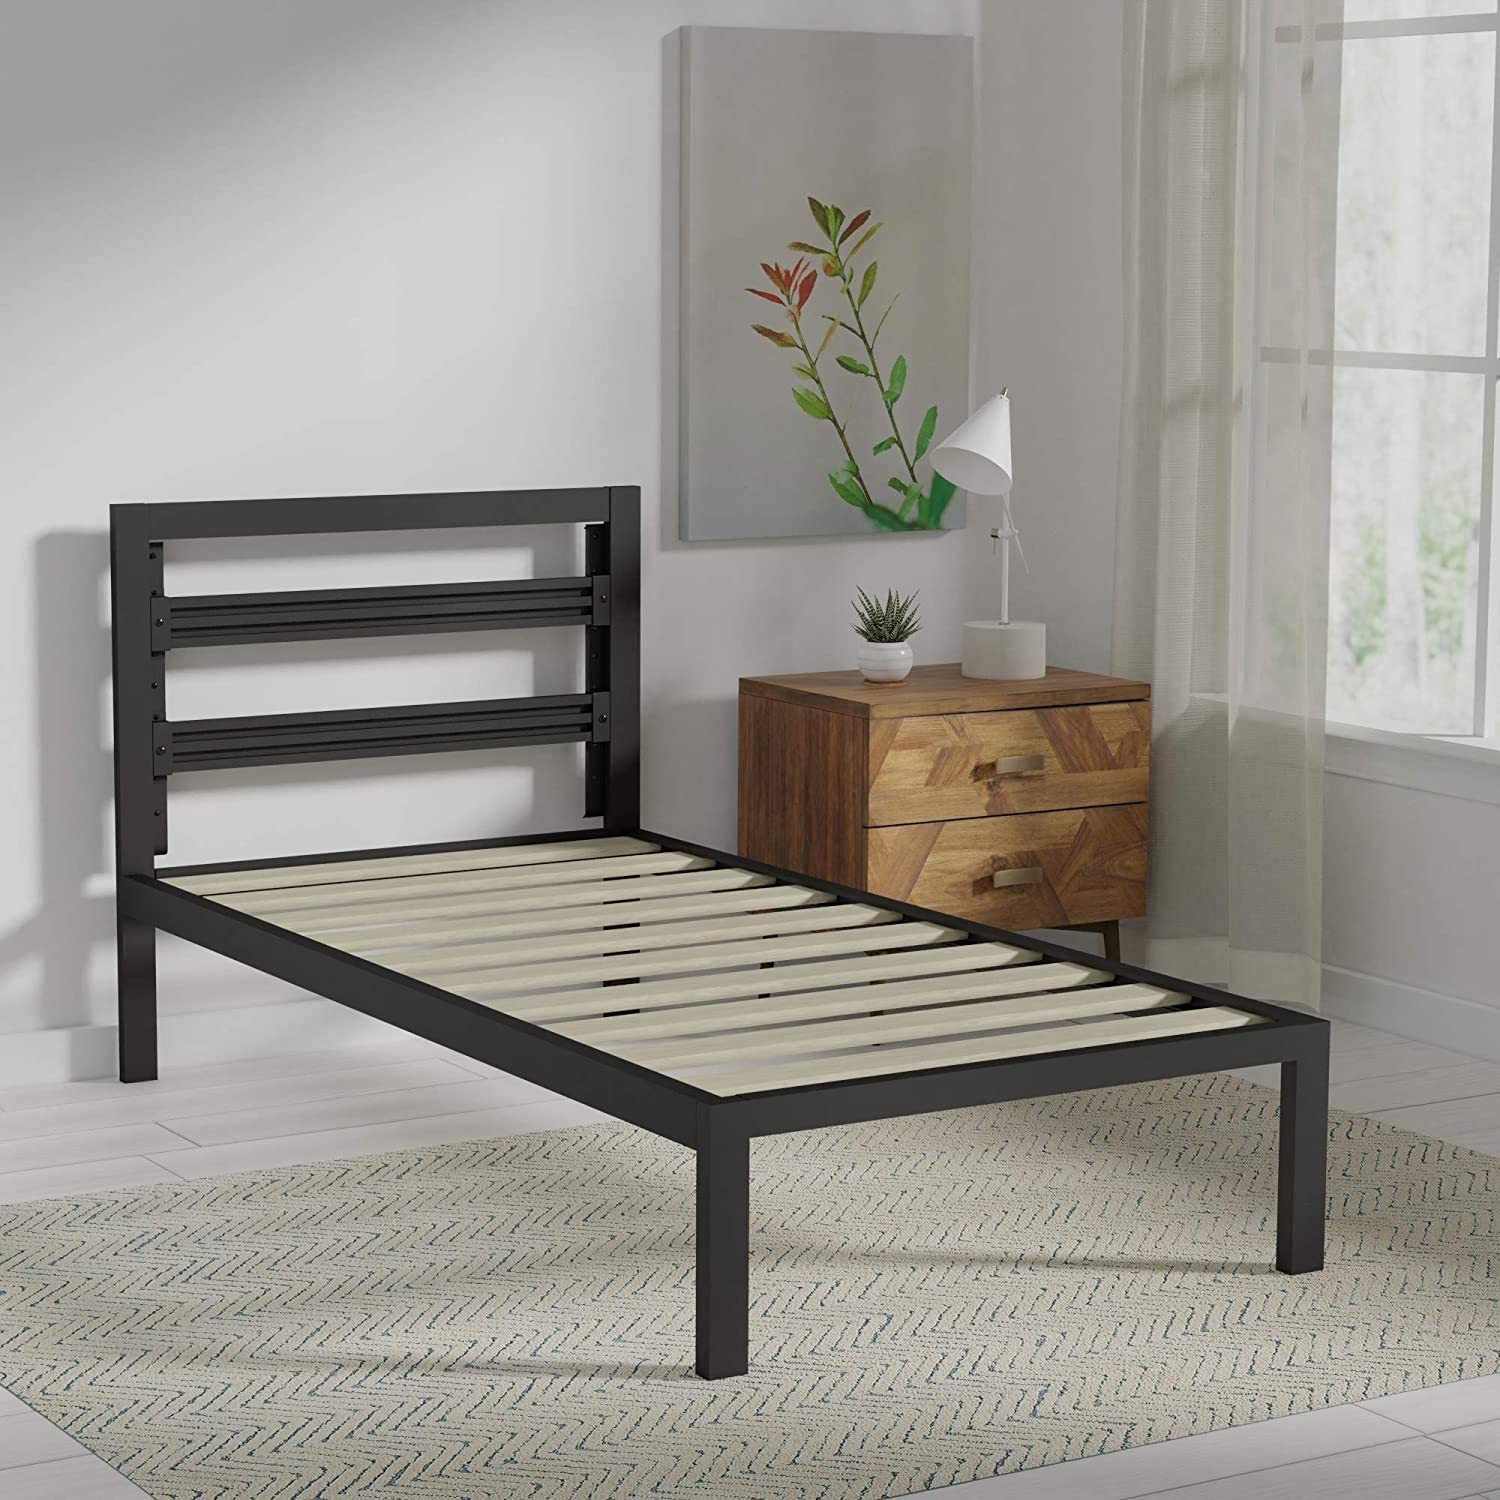 AmazonBasics Metal Bed with Modern Industrial Design Headboard